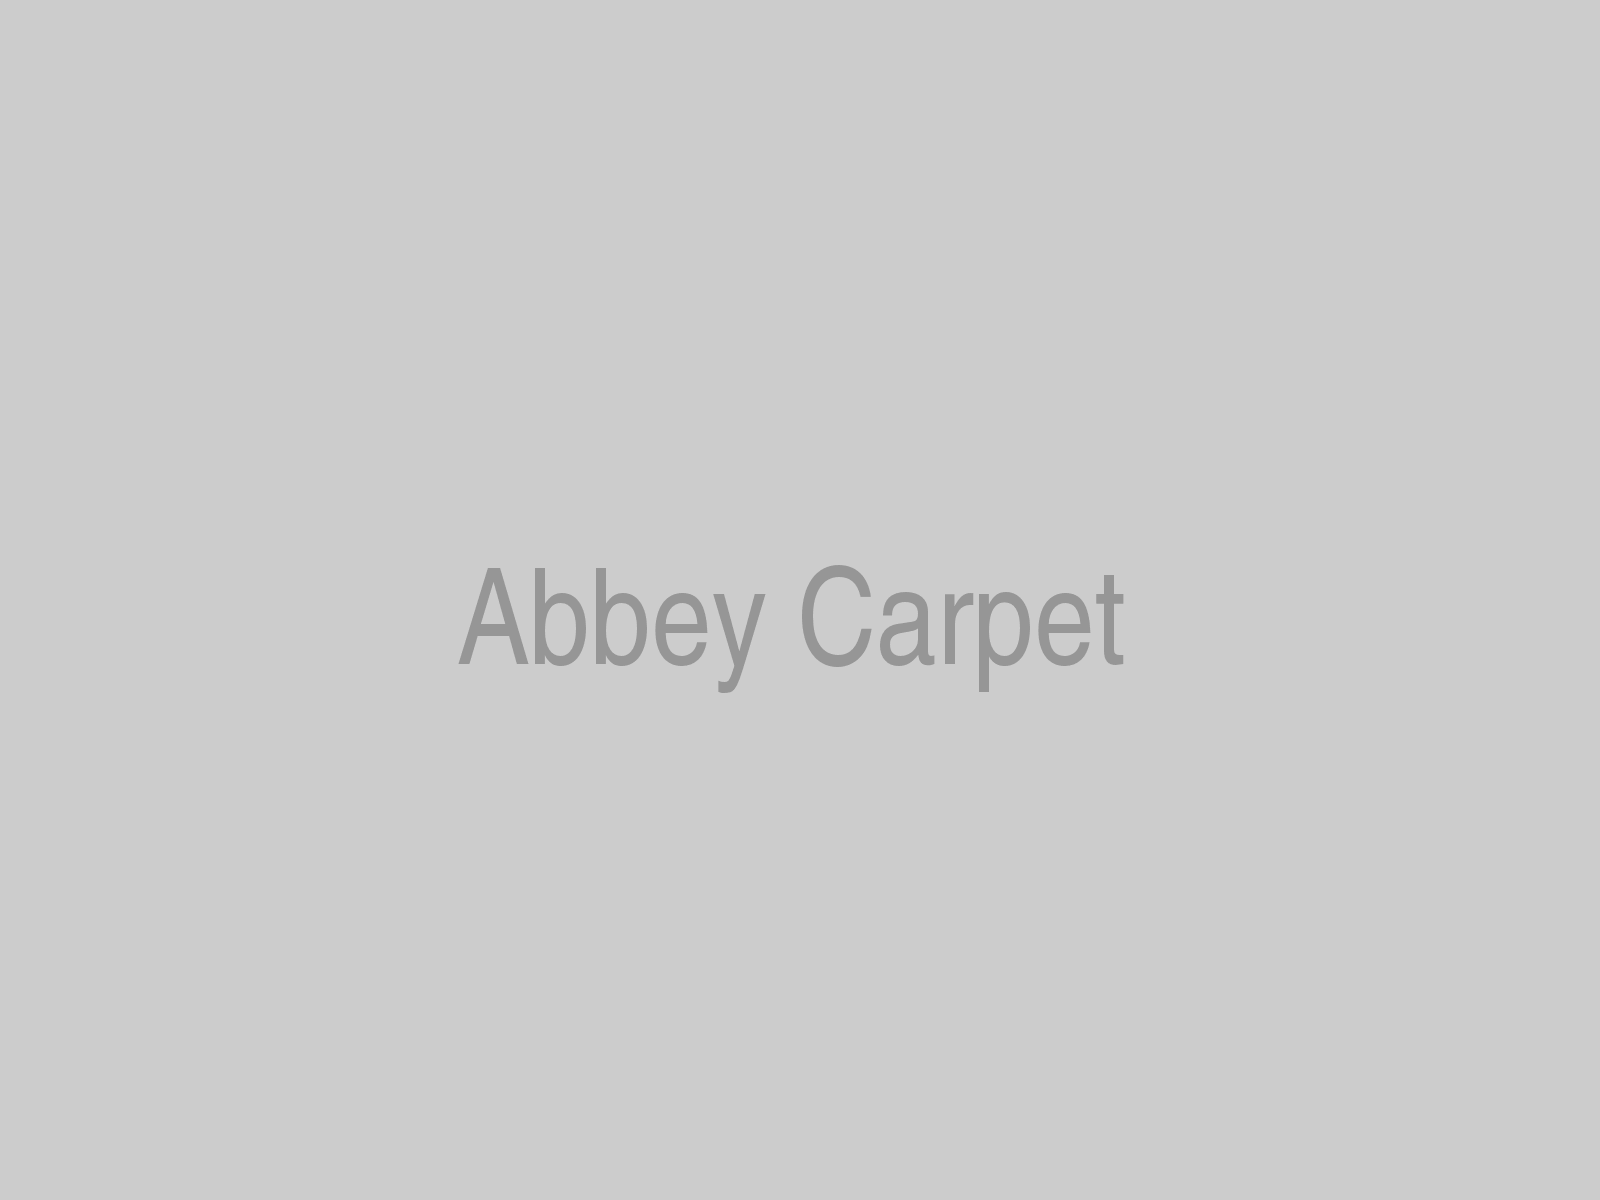 Abbey Carpet